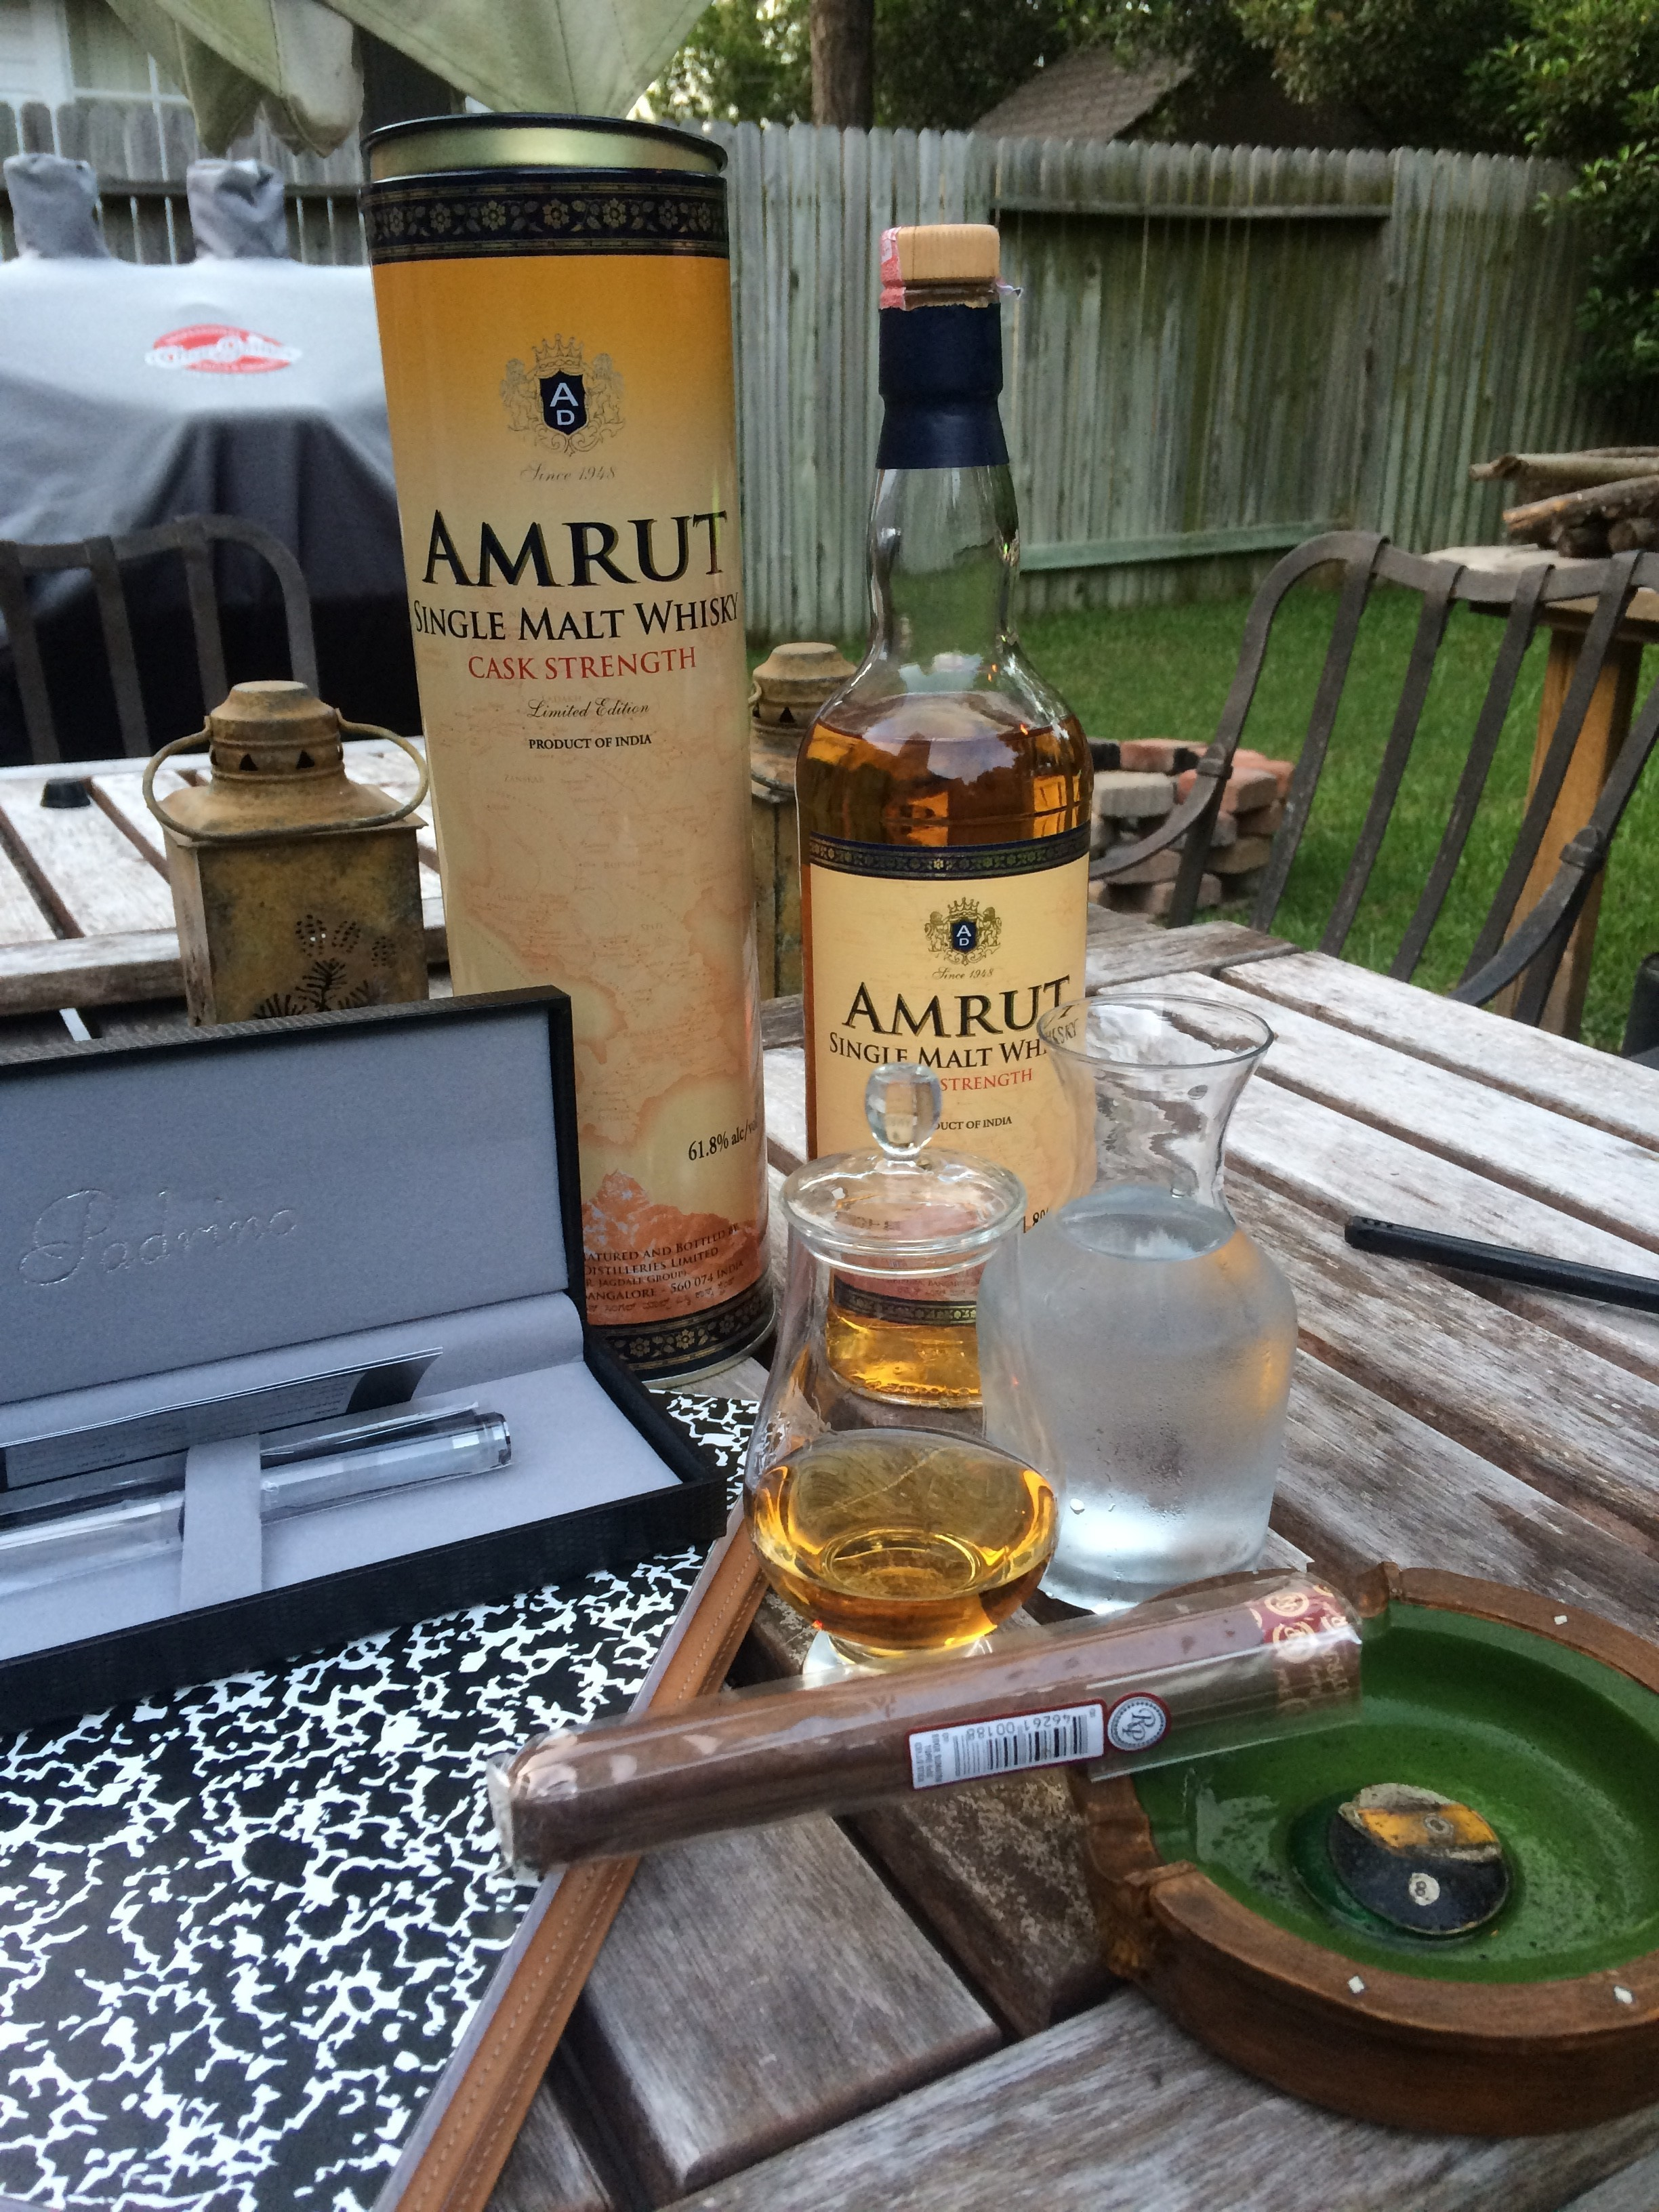 Amrut Single Malt Whisky- Cask Strength